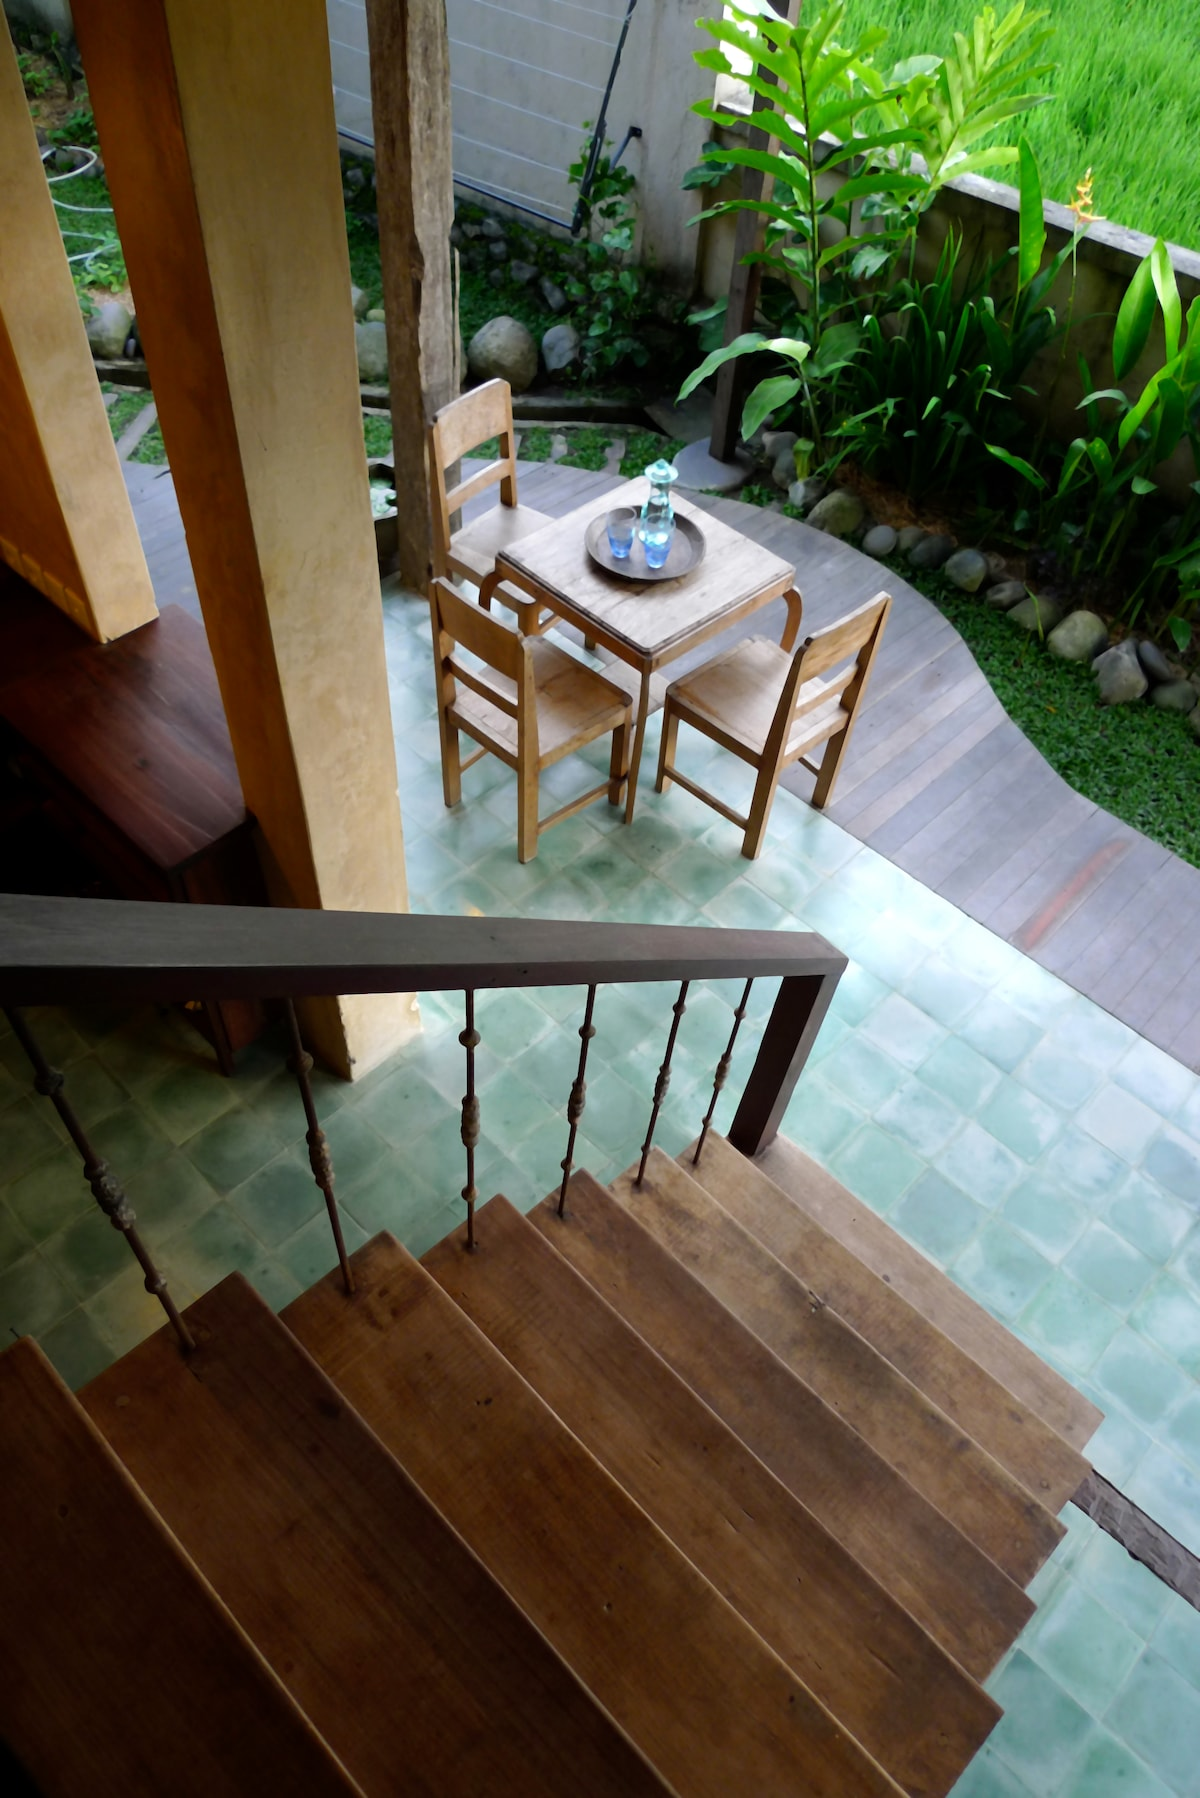 Looking down onto the deck from stairway